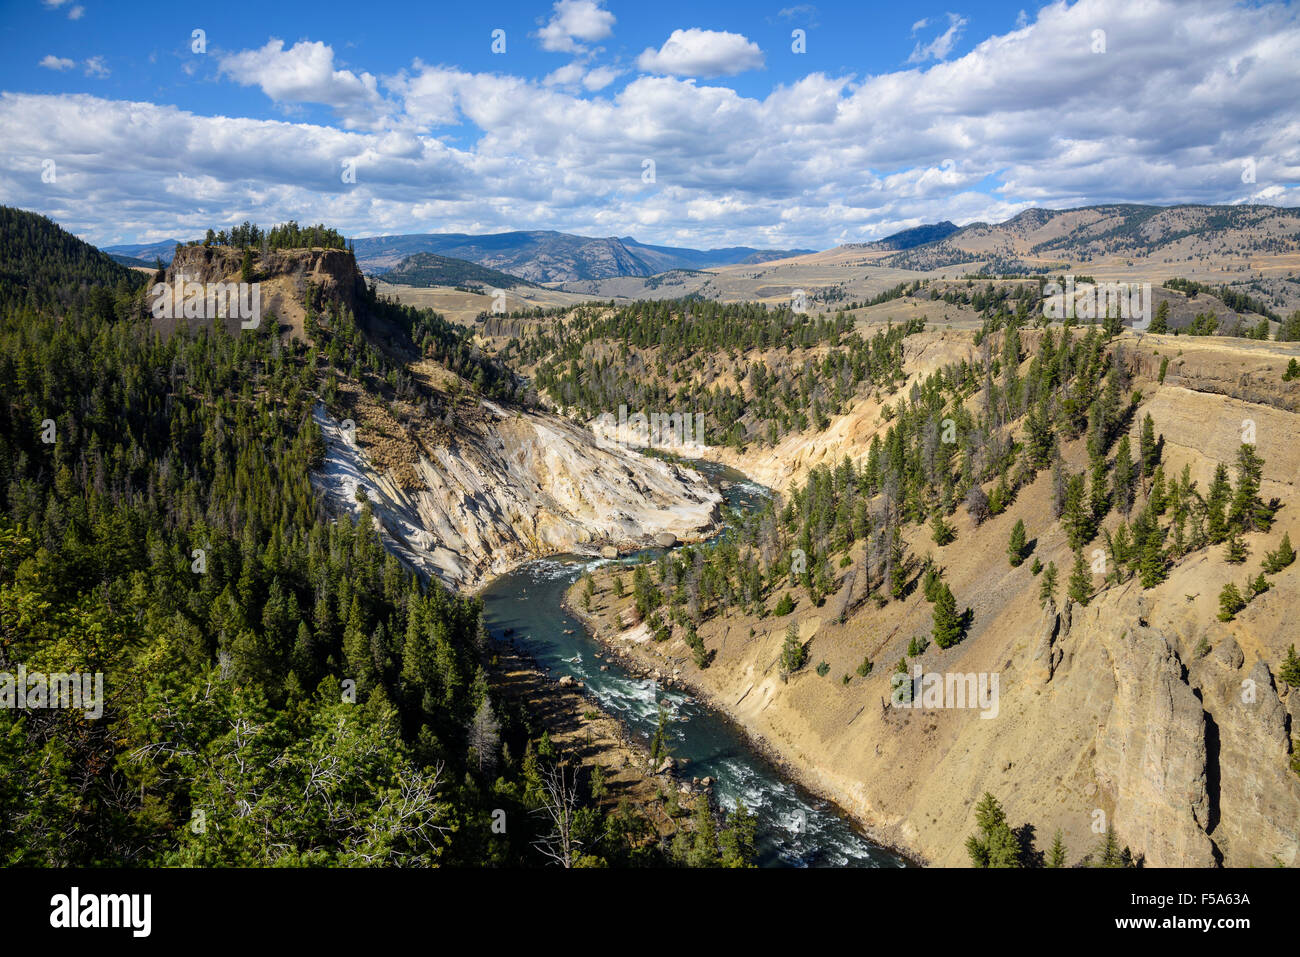 Calcite Spring Overlook, Yellowstone National Park, Wyoming, USA - Stock Image